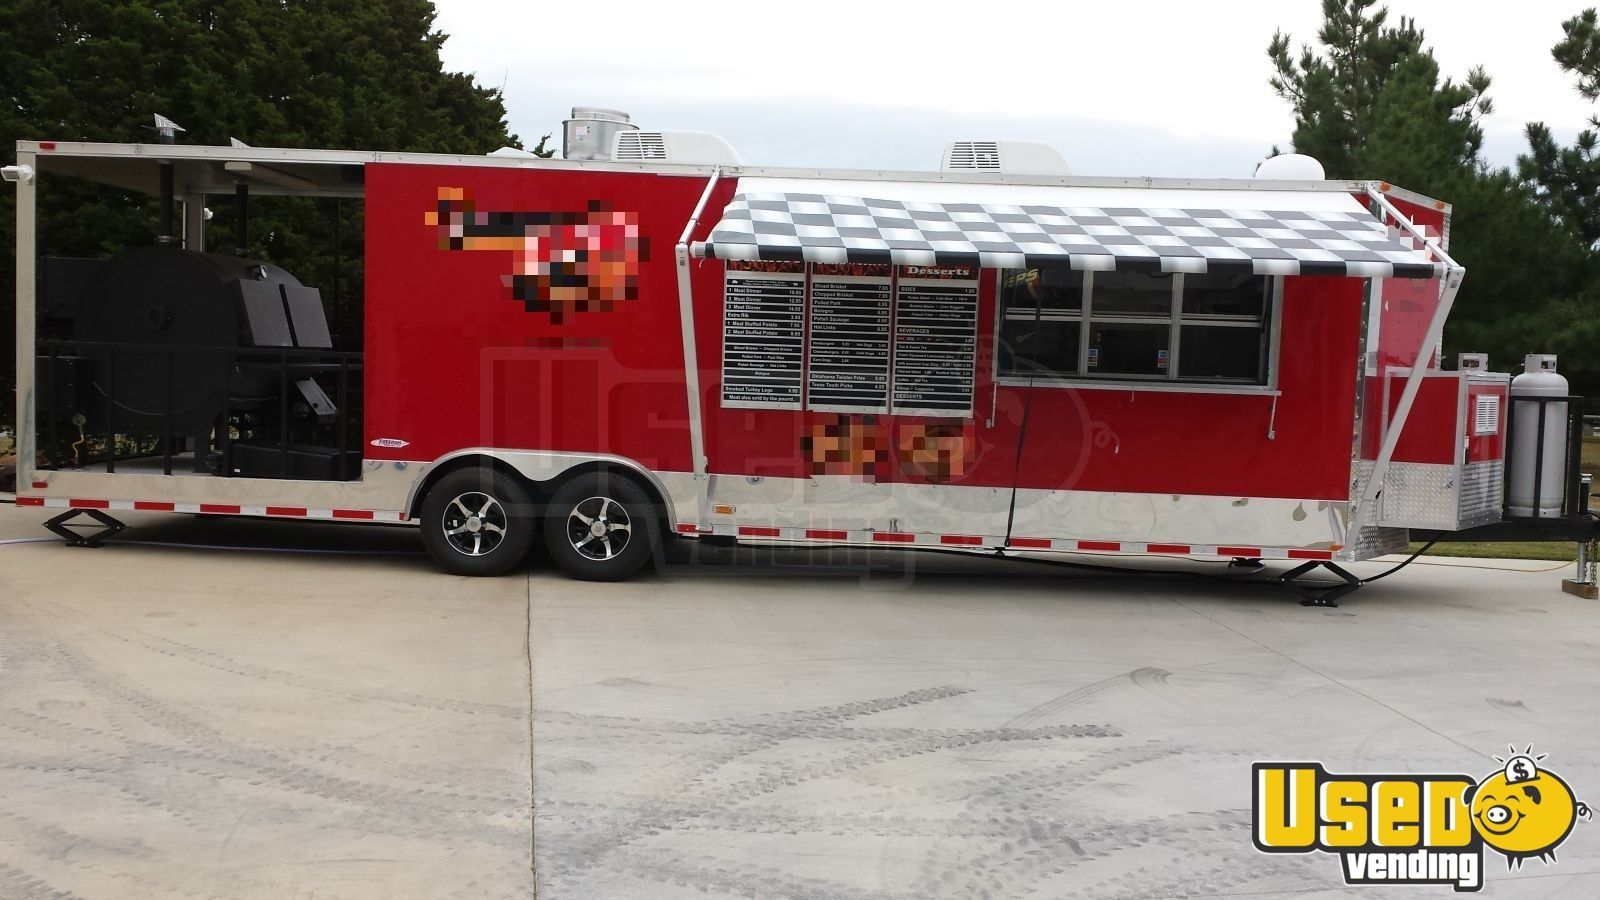 Pin on food truck business